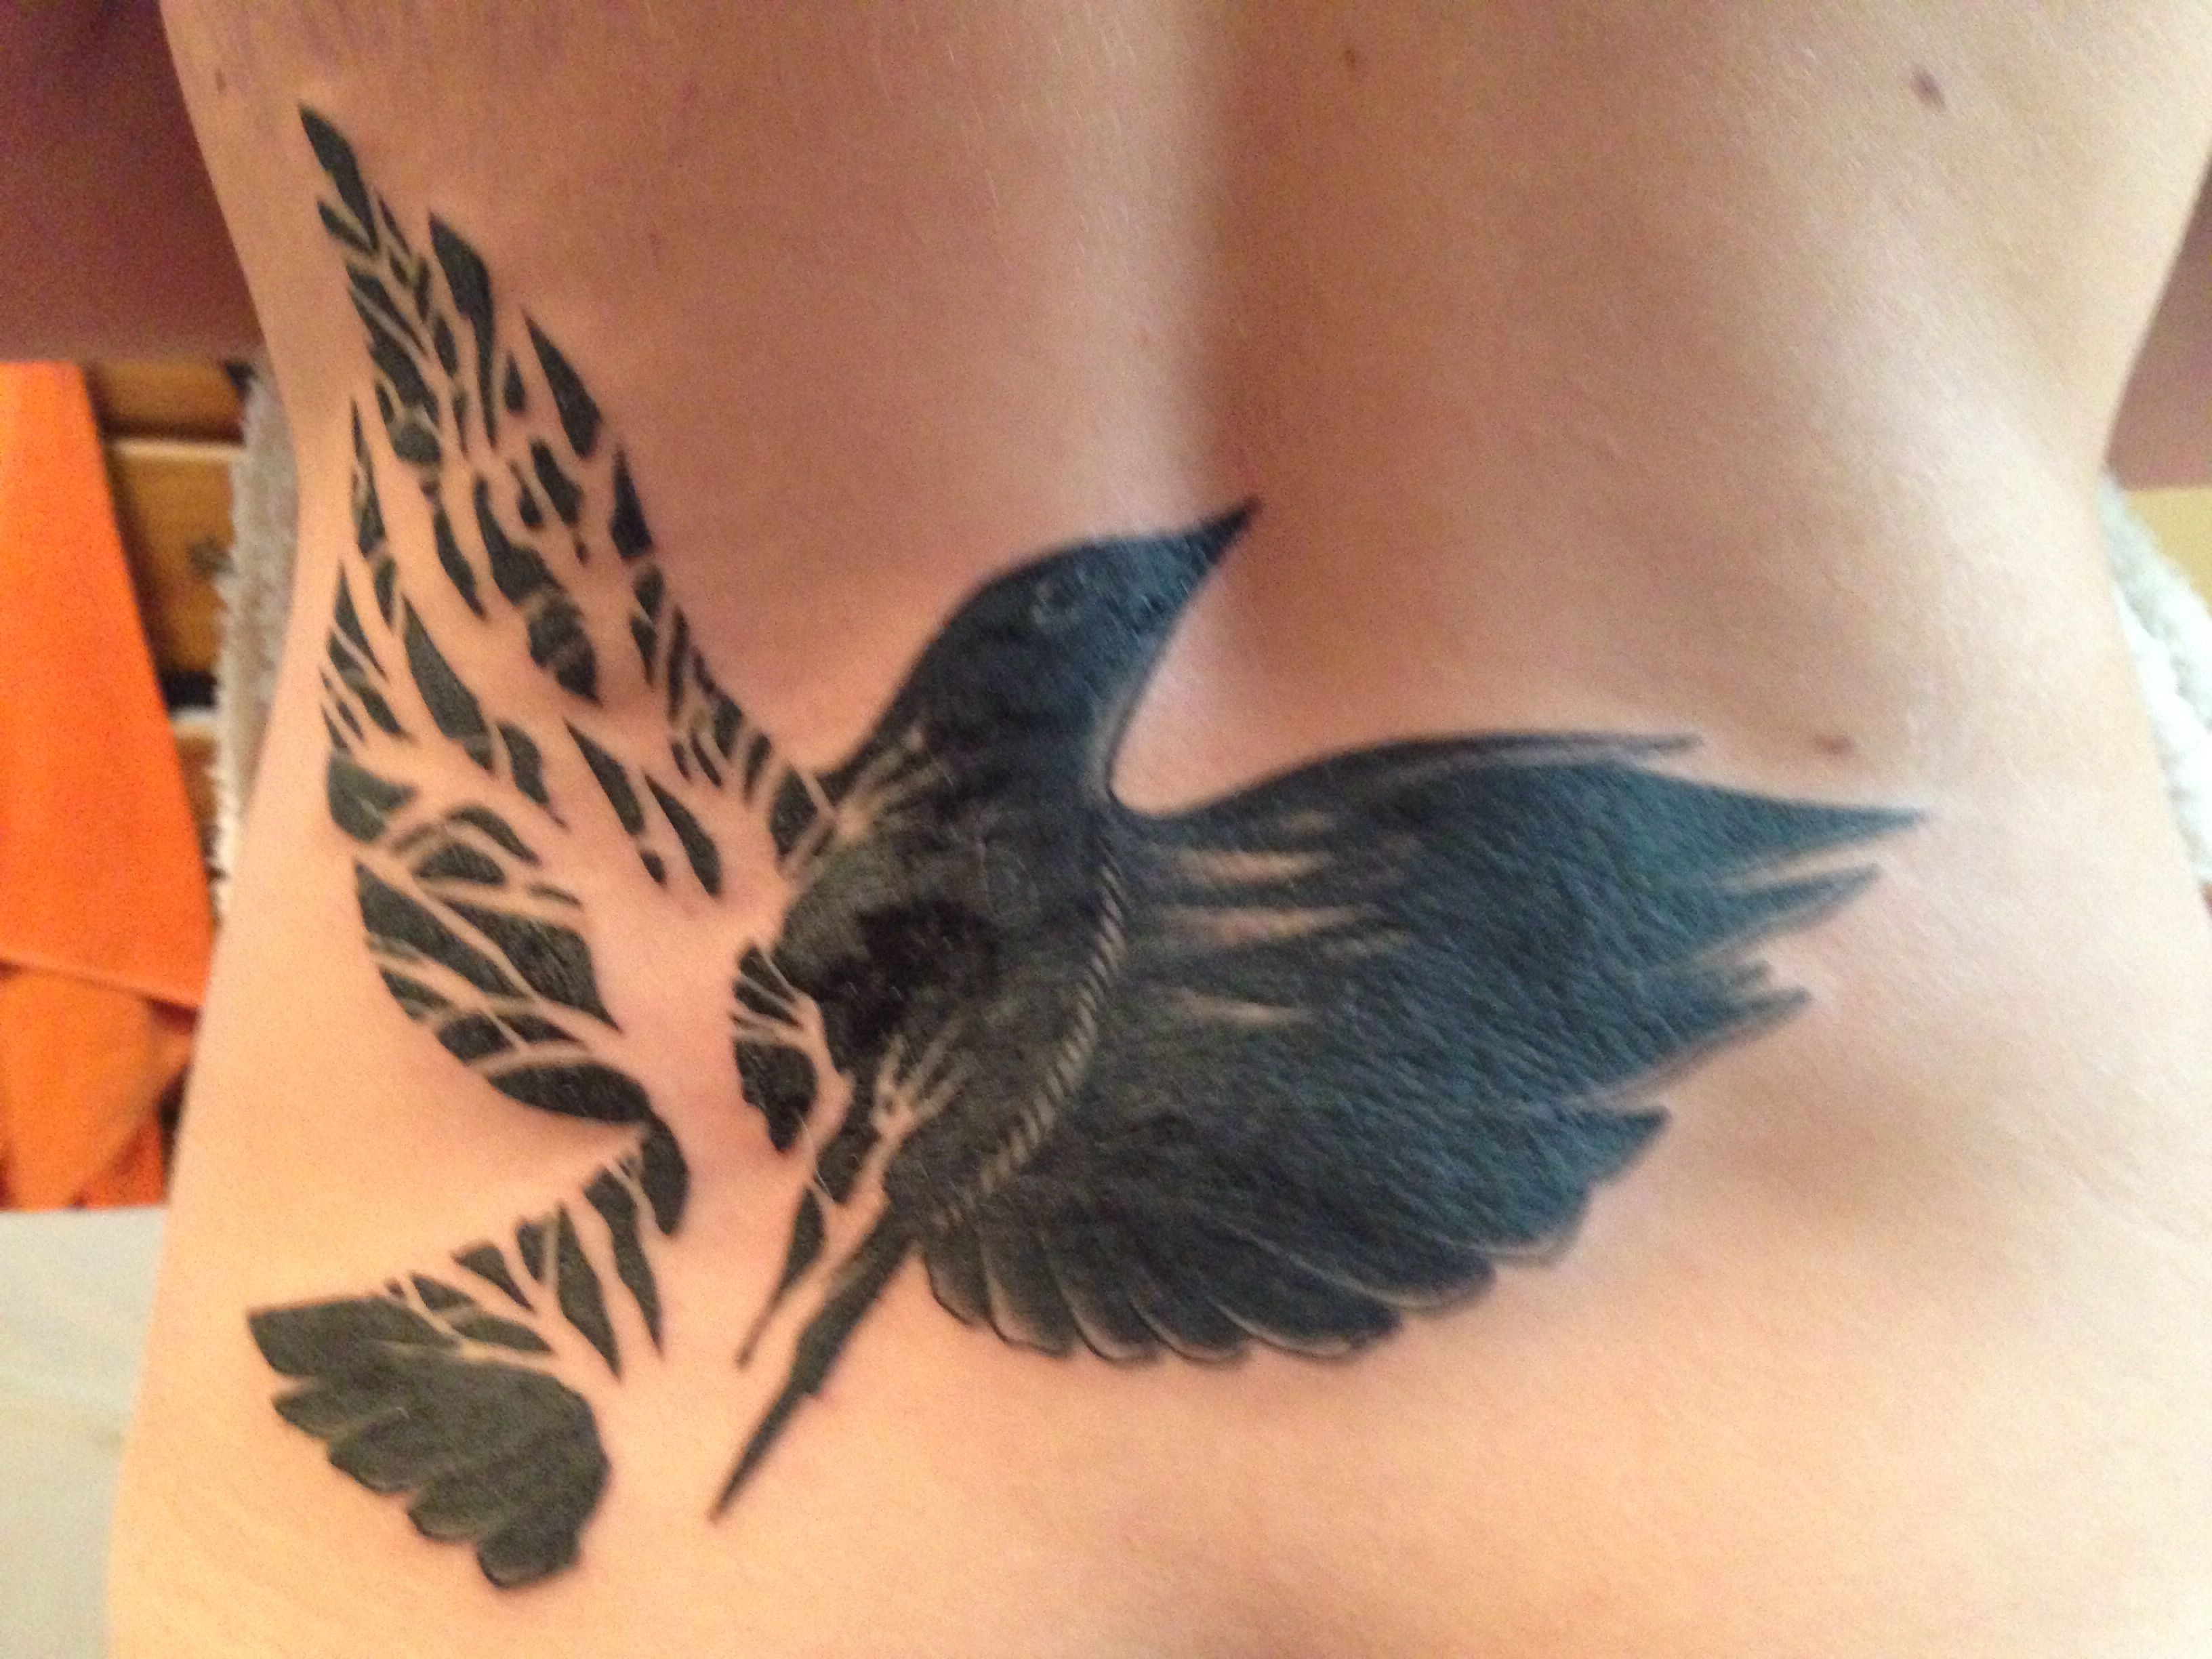 Dead Tree Bird Wing Cover Up Tattoo